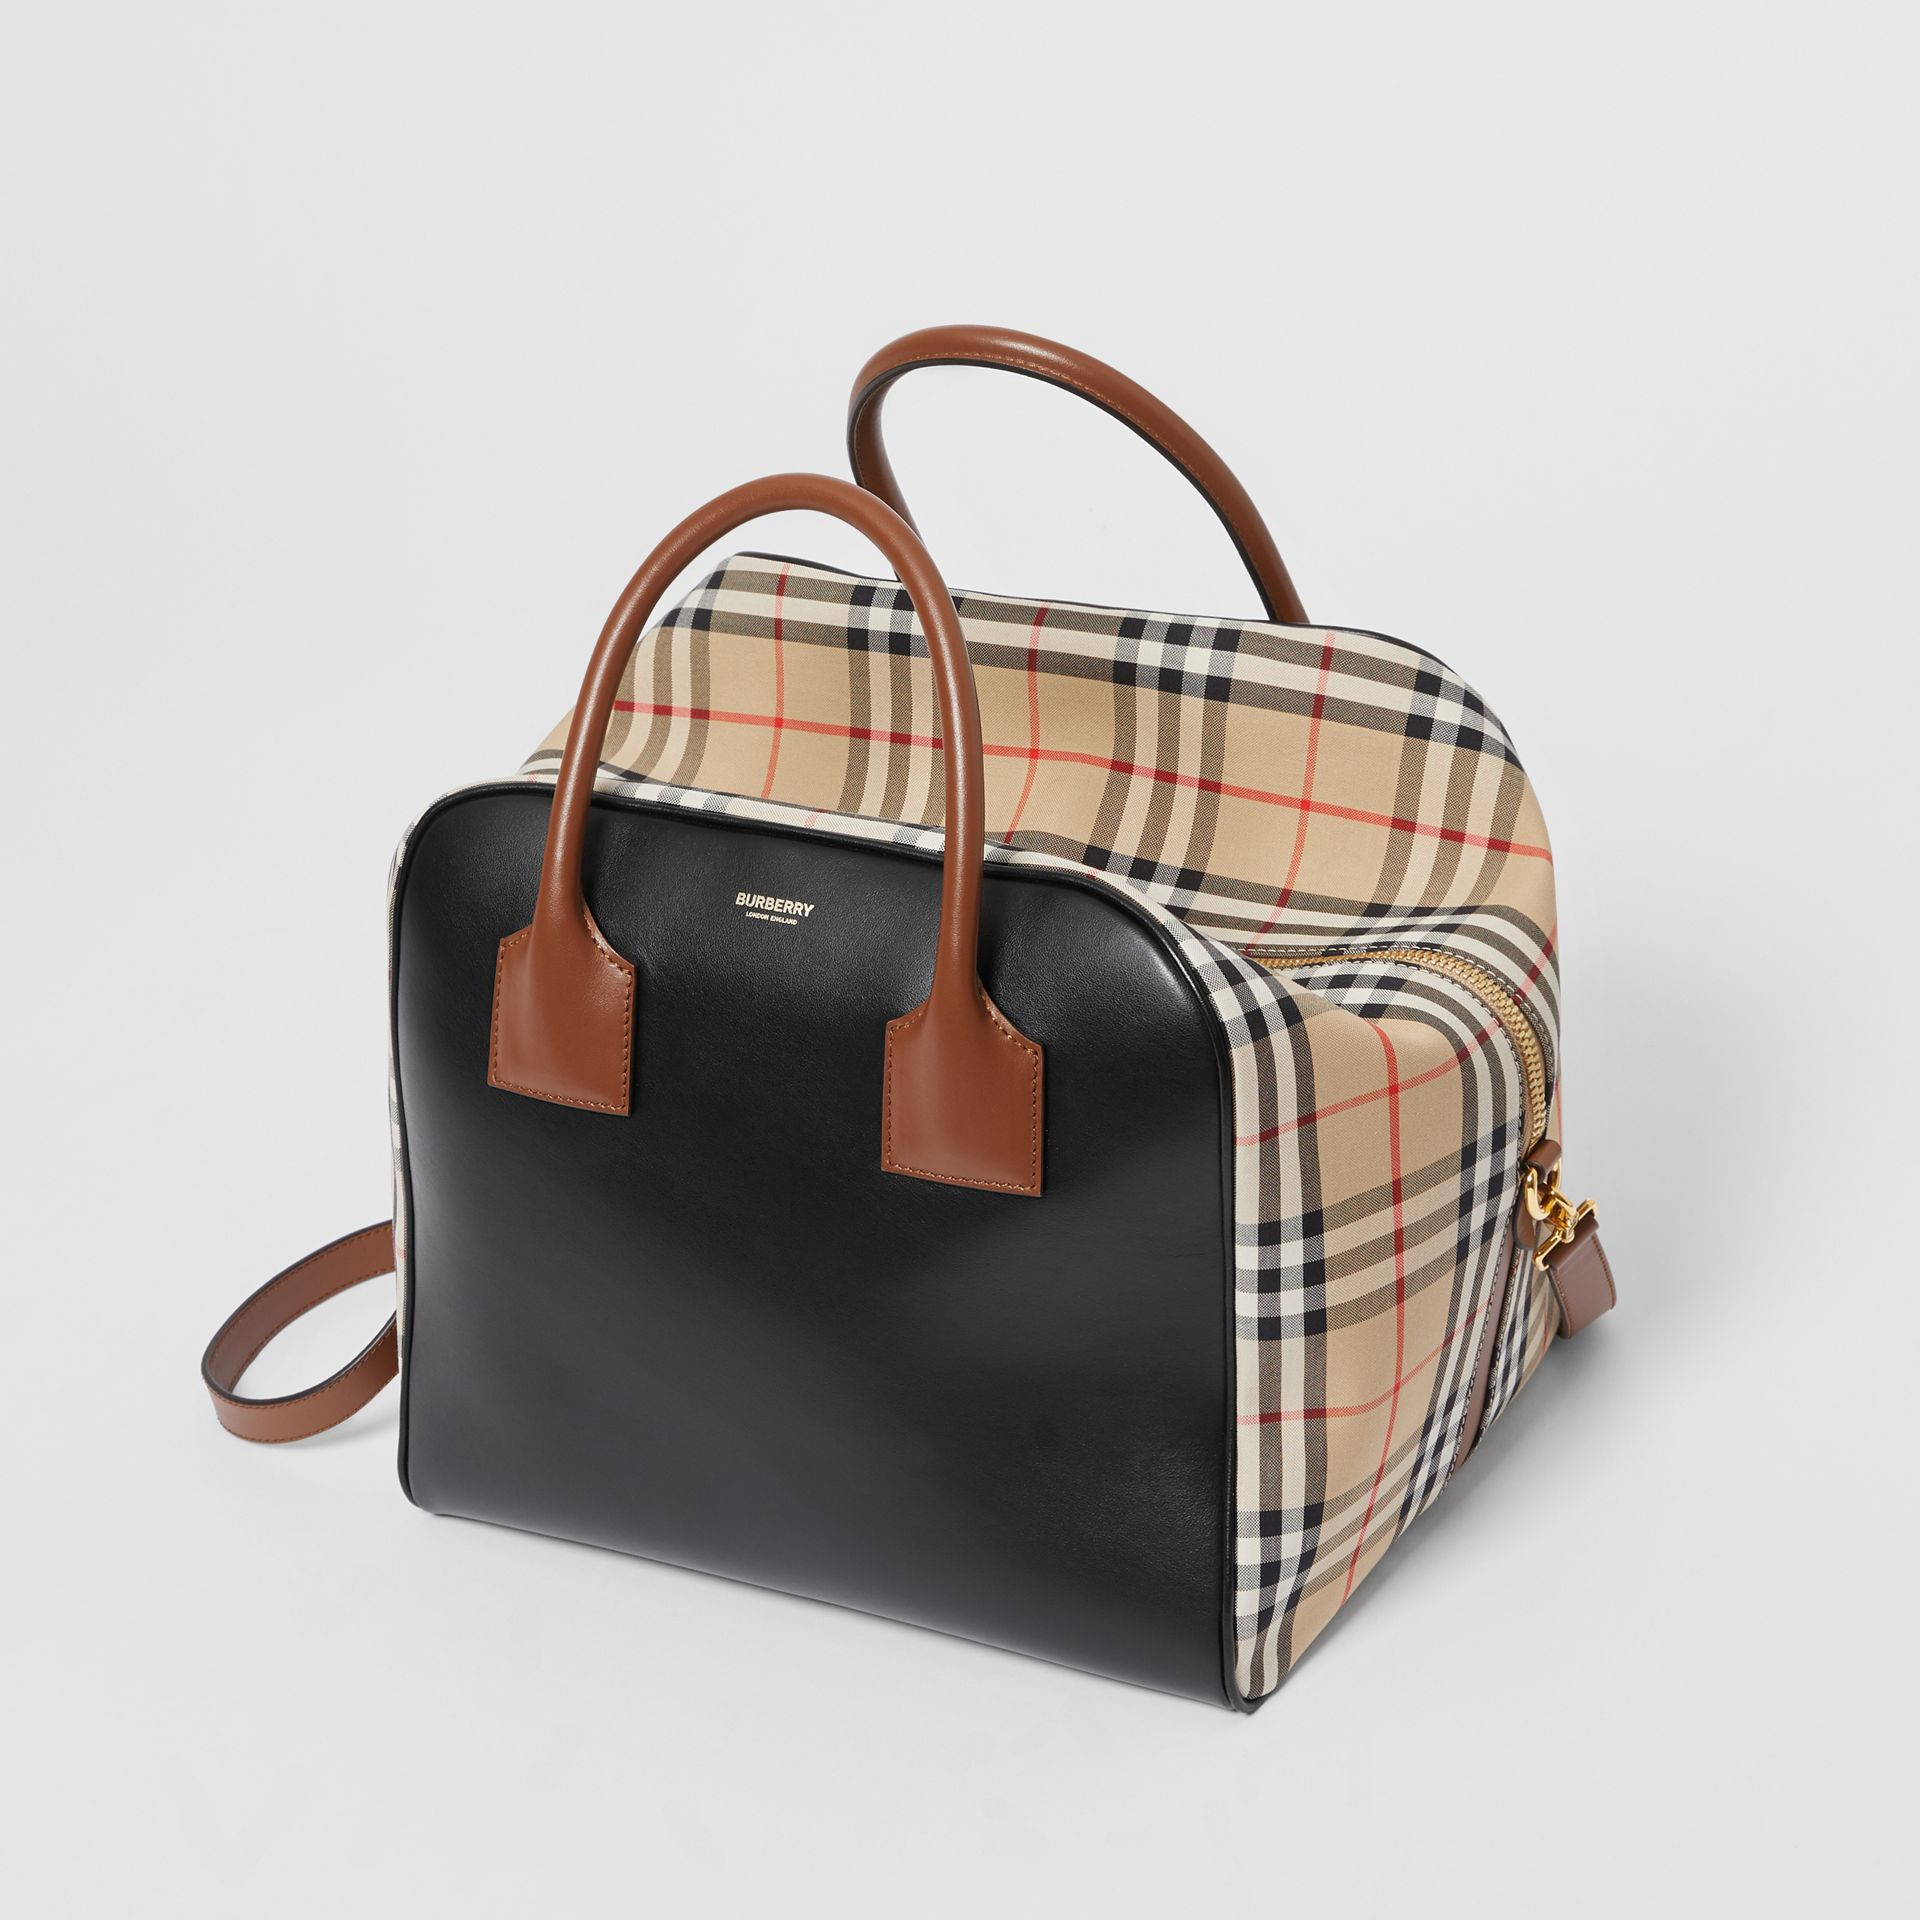 Medium Leather and Vintage Check Cube Bag in Archive Beige - Women | Burberry - gallery image 3